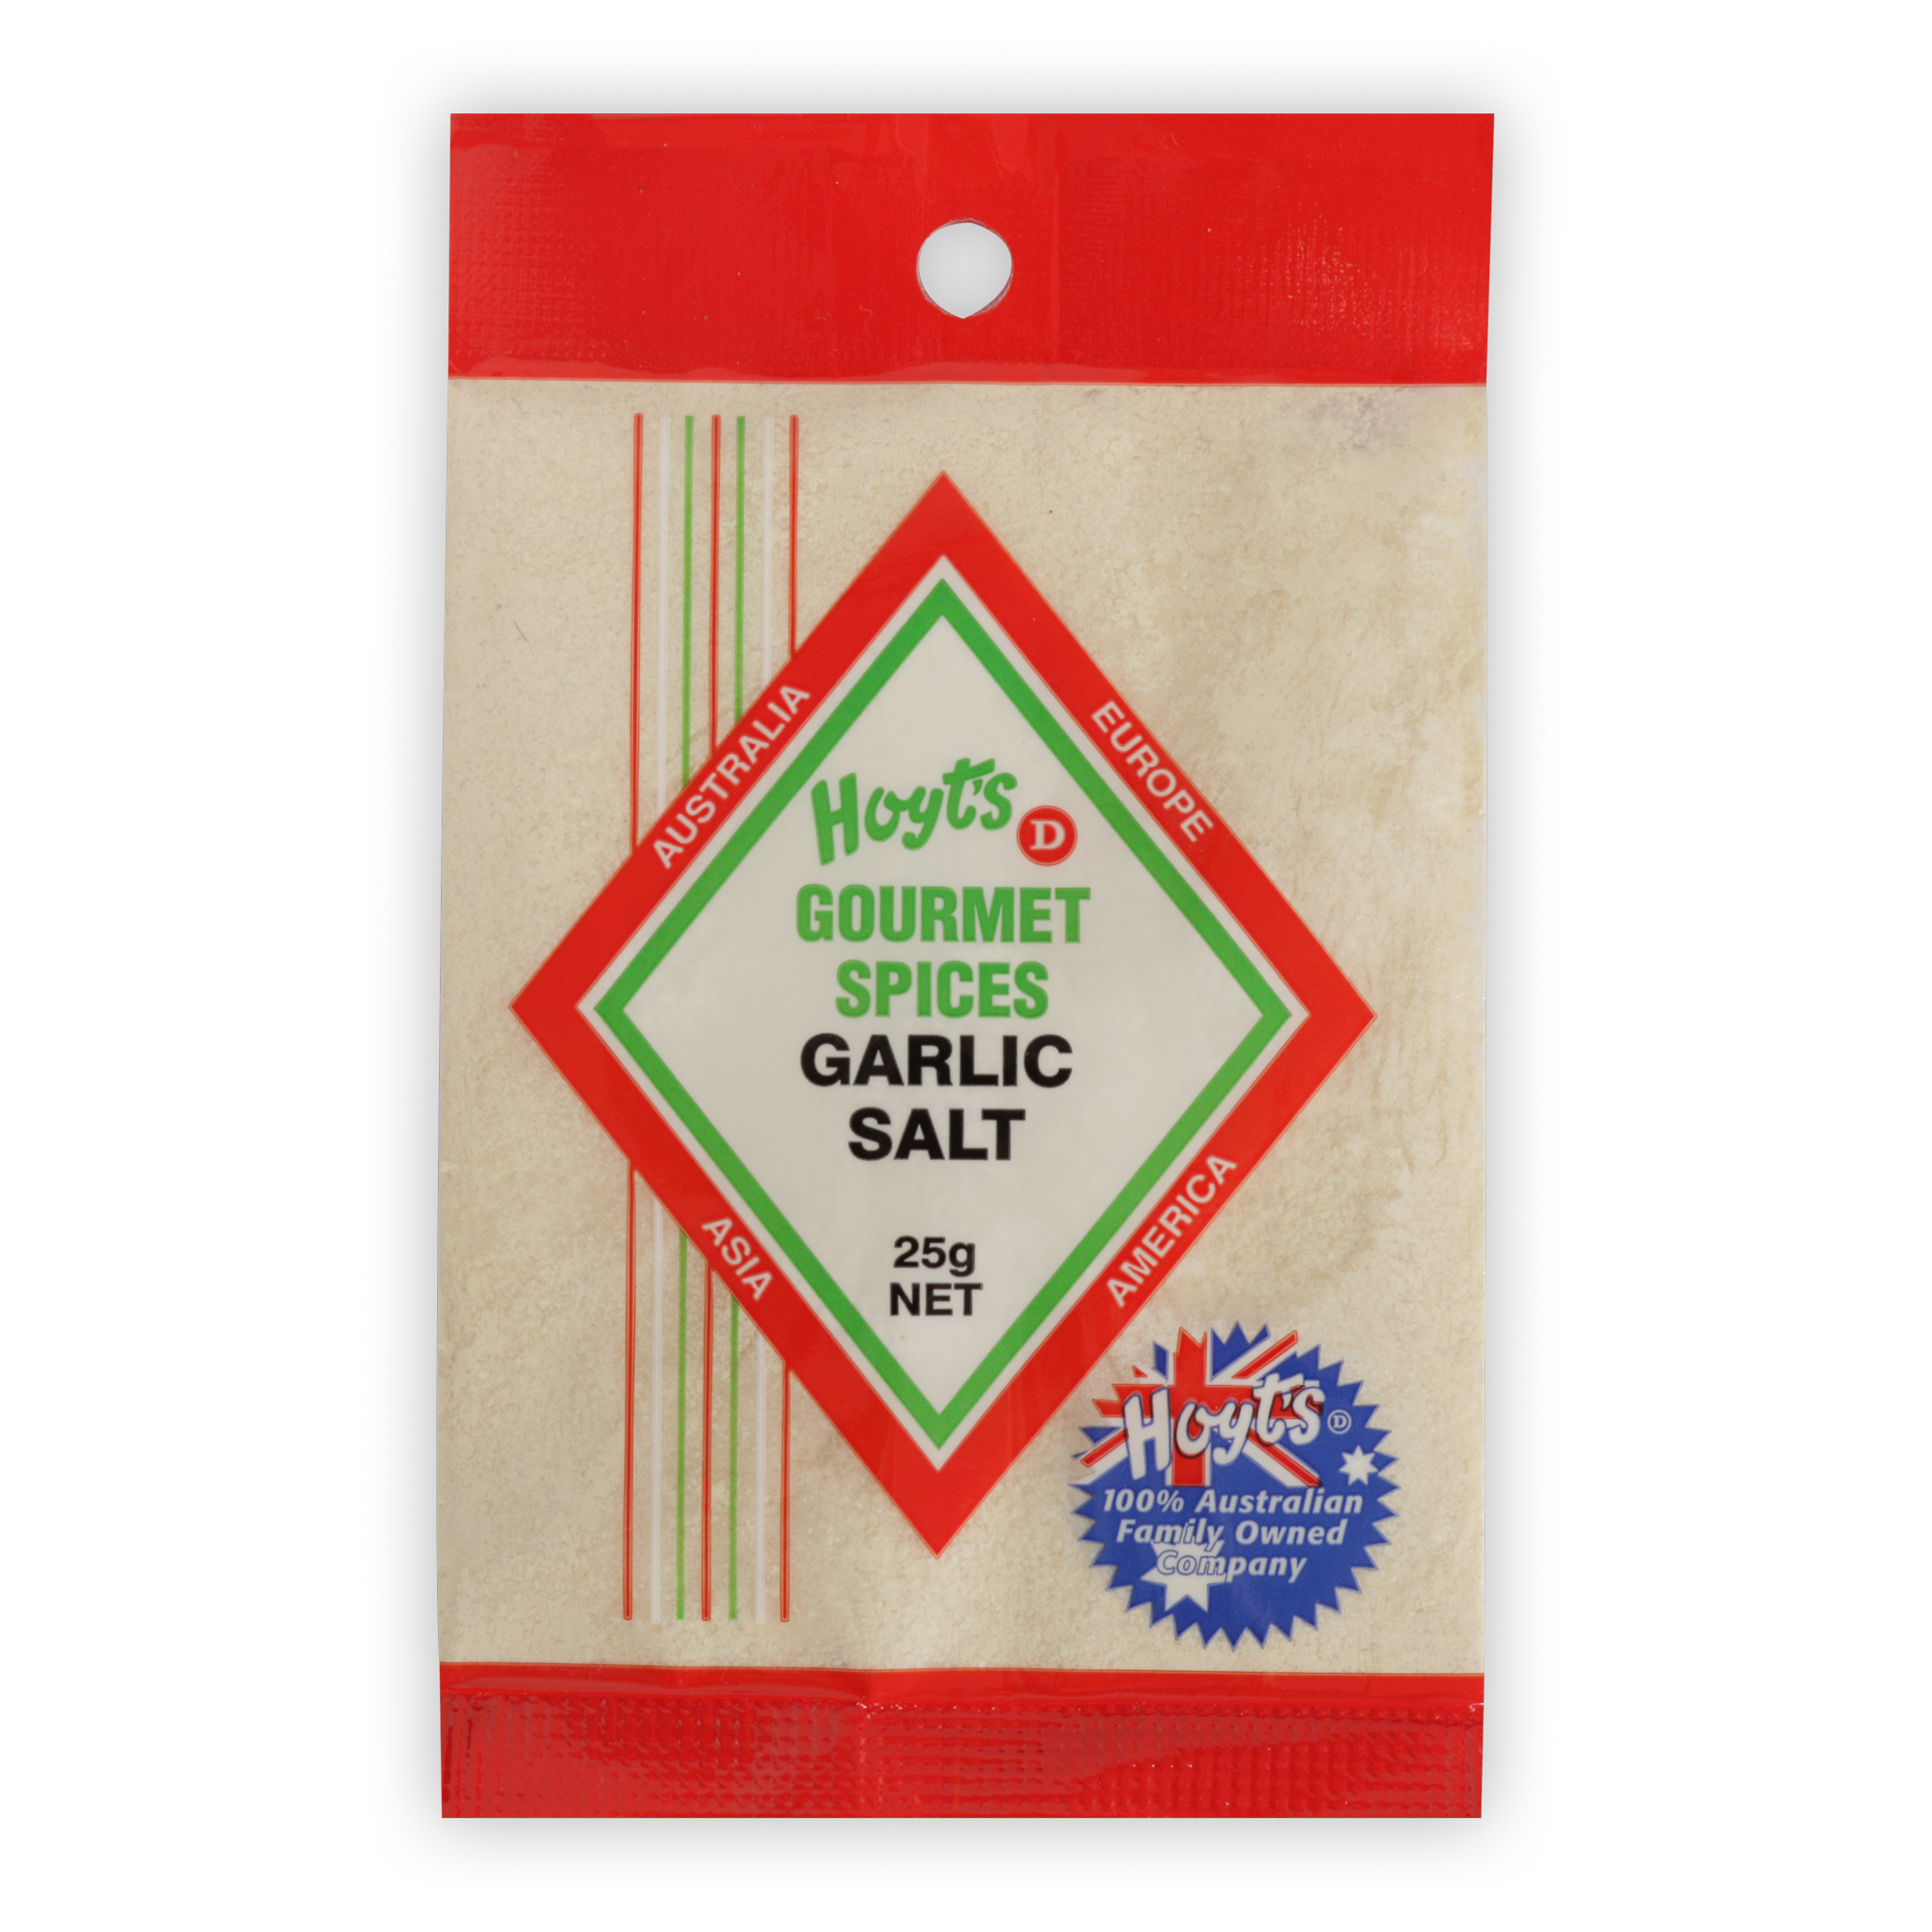 Gourmet Garlic Salt 25g - 9300725010799 1